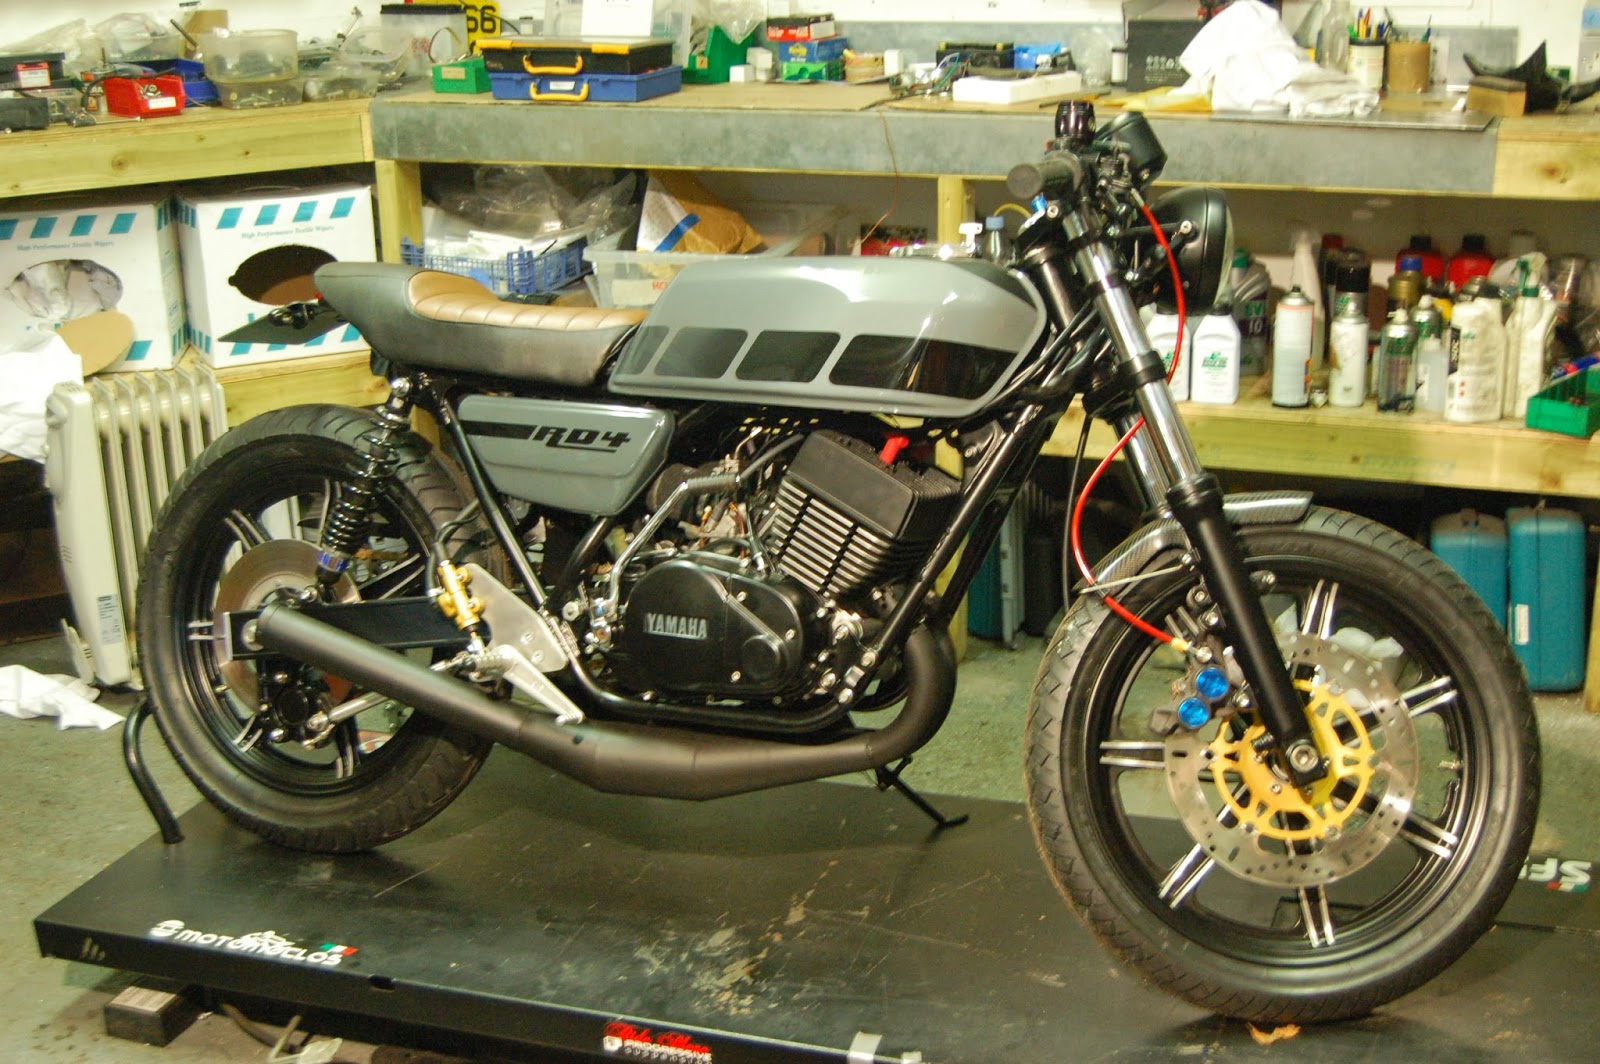 European Motorcycle Diaries: RD4 Stroker comes home - Yamaha